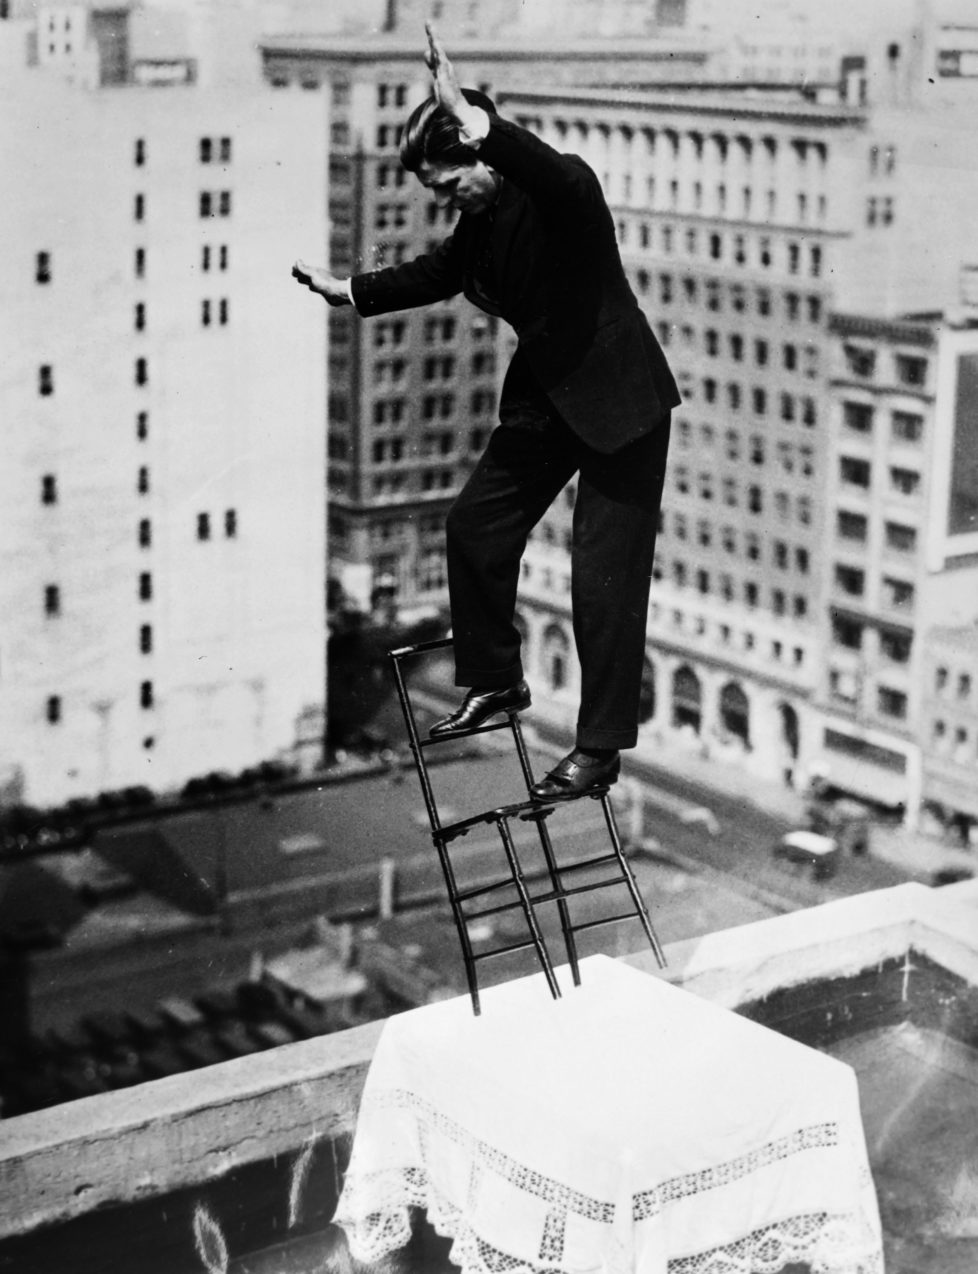 NEW YORK, NY - MARCH 25: French equilibrist Gilbert Bettancourt tests his balance on a chair resting on a table with only two legs, close to the edge of the building roof on March 25, 1932 in New York City. (Photo by Gamma-Keystone via Getty Images)